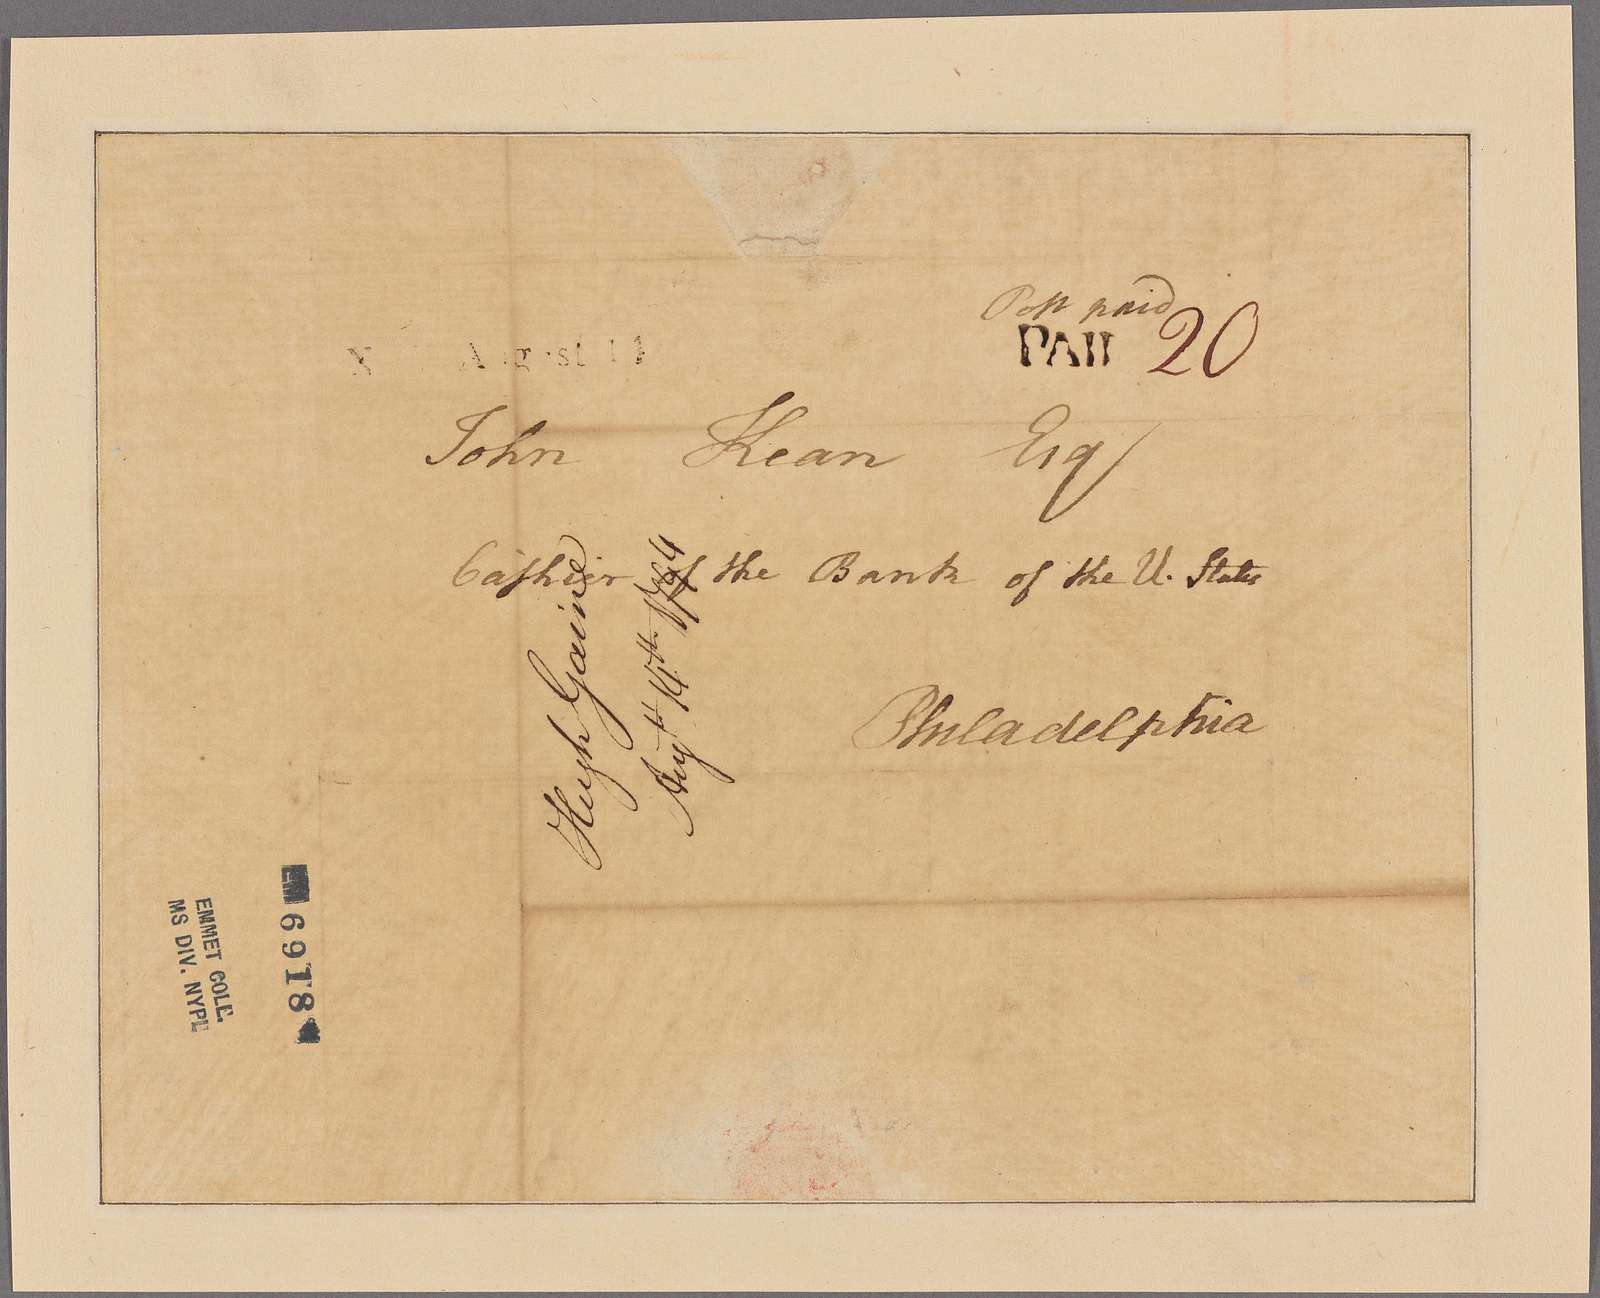 Letter to John Kean, Cashier of the Bank of the United States, Philadelphia